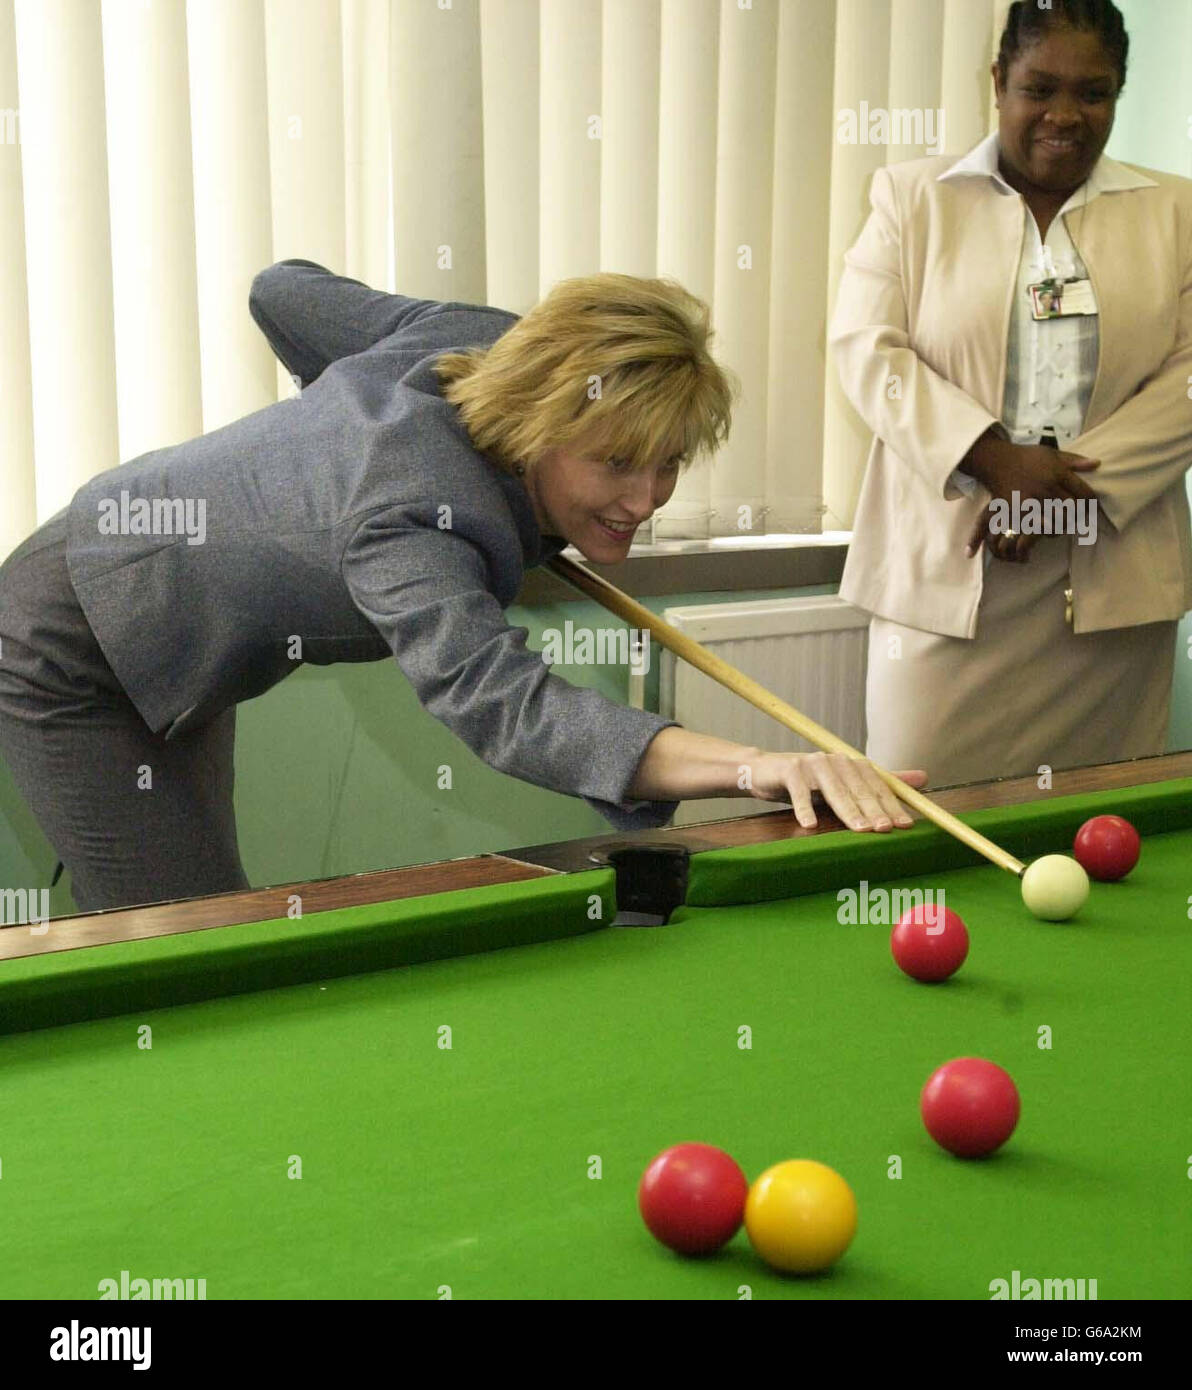 The Countess of Wessex tries her hand at pool watched by Mrs Maureen Earle, a bail support and remand officer, during Stock Photo